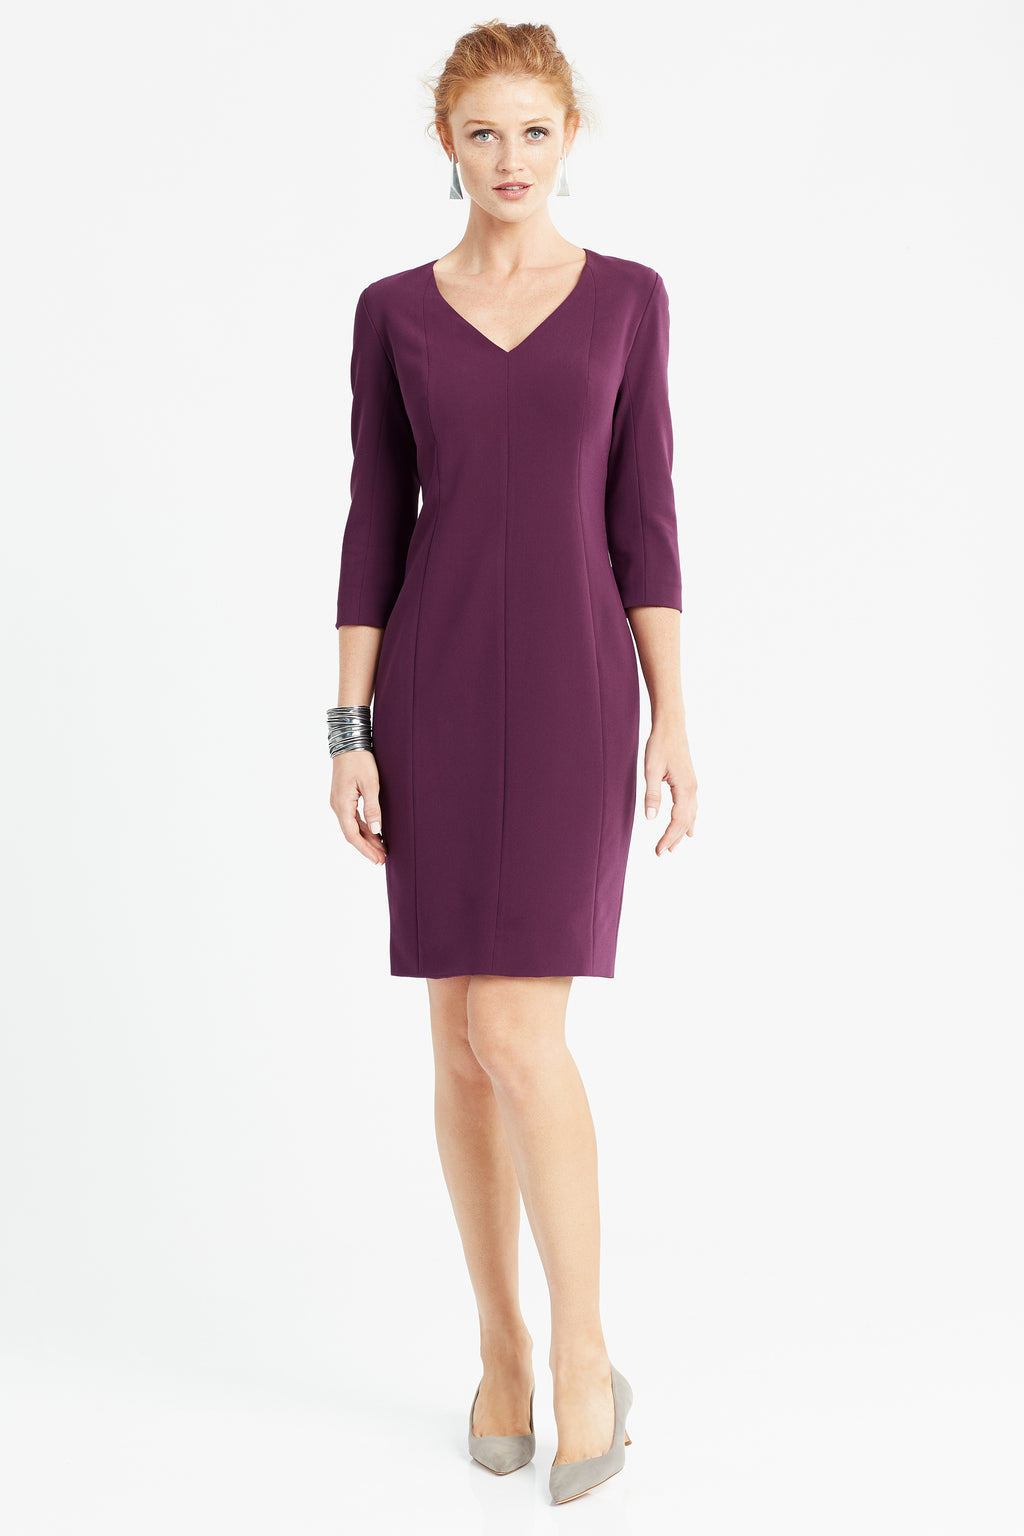 Below knee v neck form-fitting sheath dress in aubergine/purple/eggplant